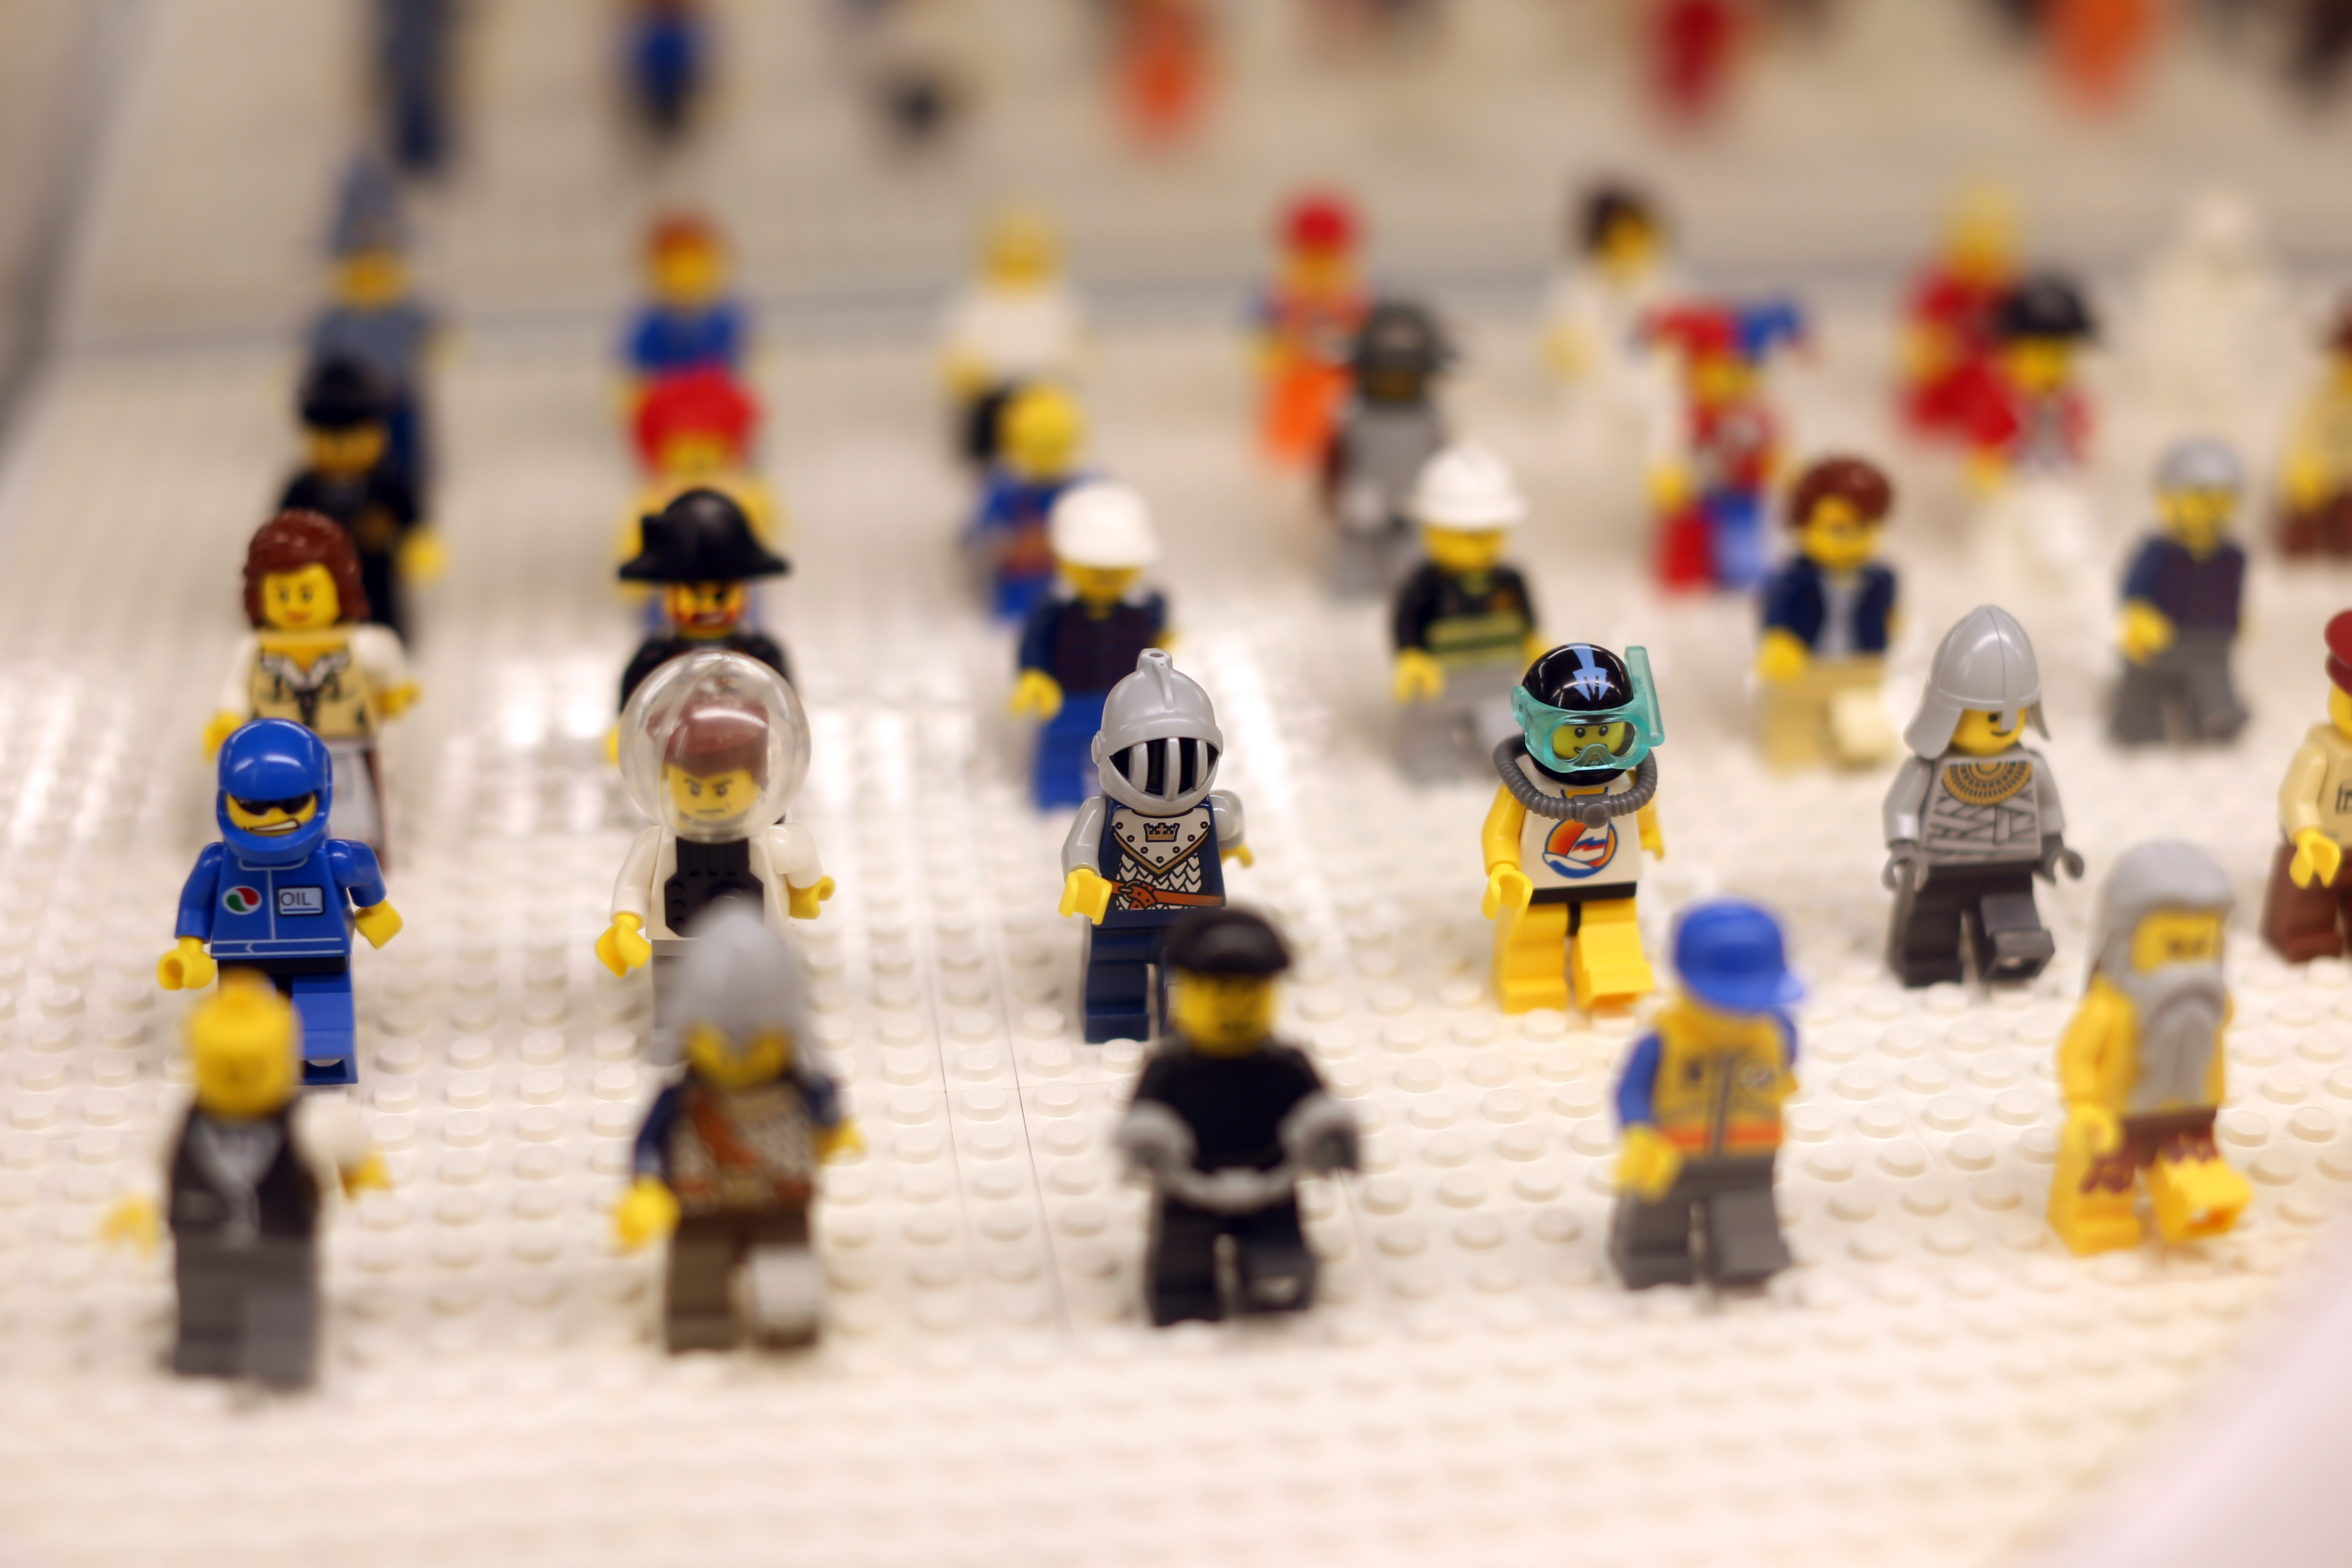 Lego minifigures are displayed in a shop in Levallois-Perret, west of Paris, 2012.